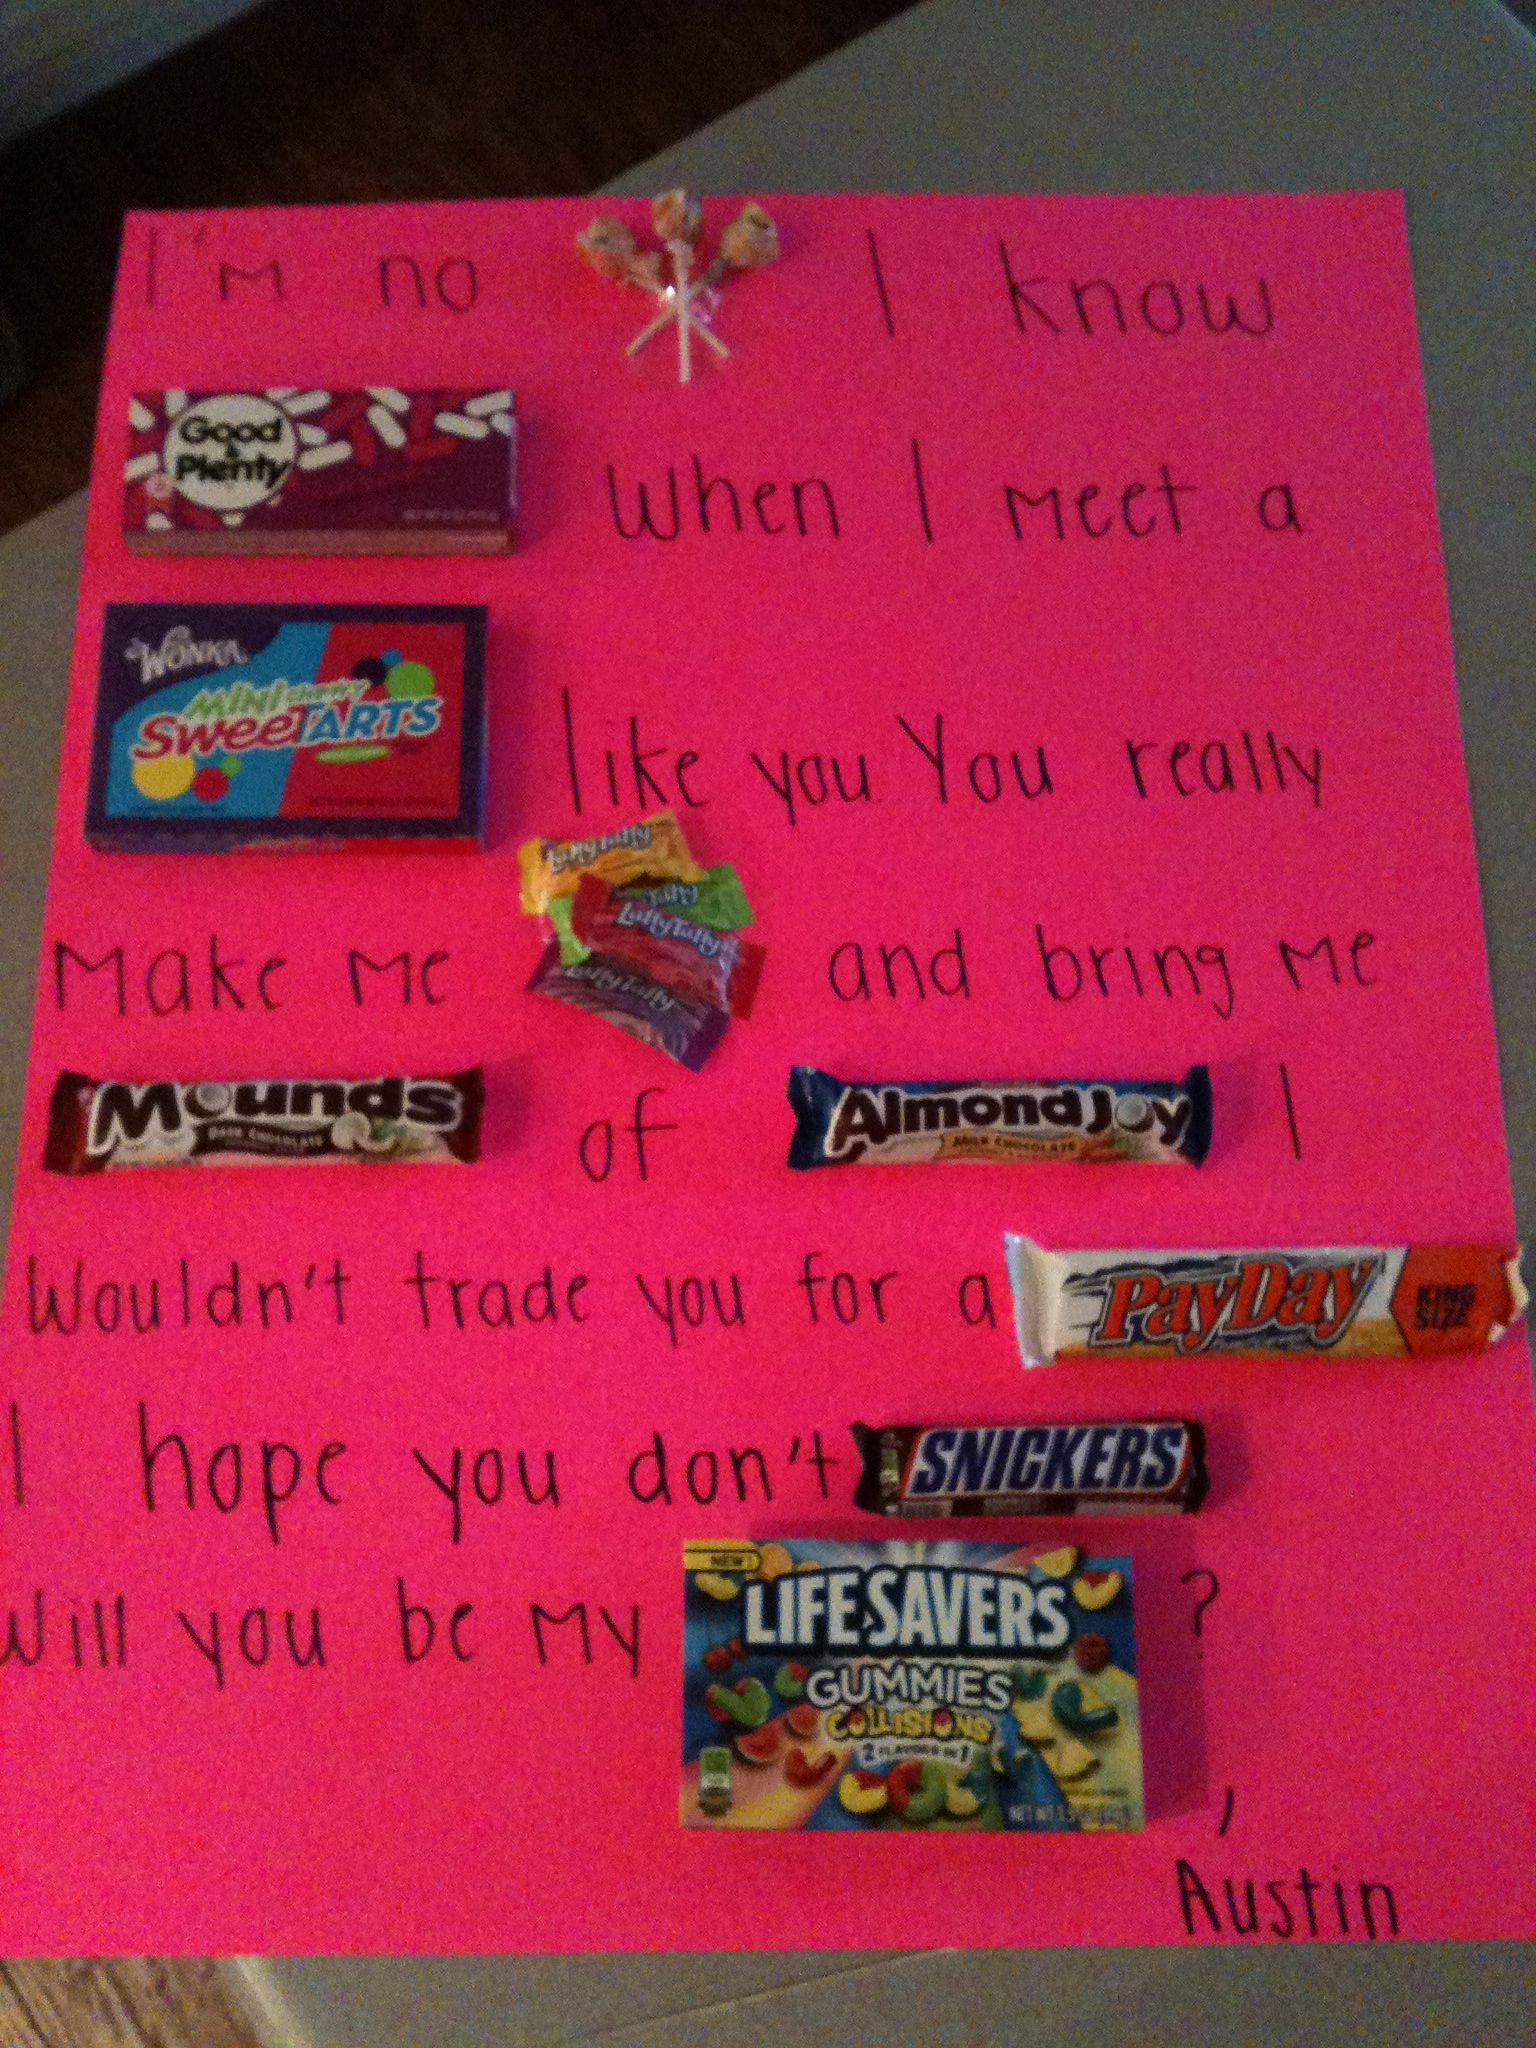 A Cute Way A Guy Asked A Girl Out �